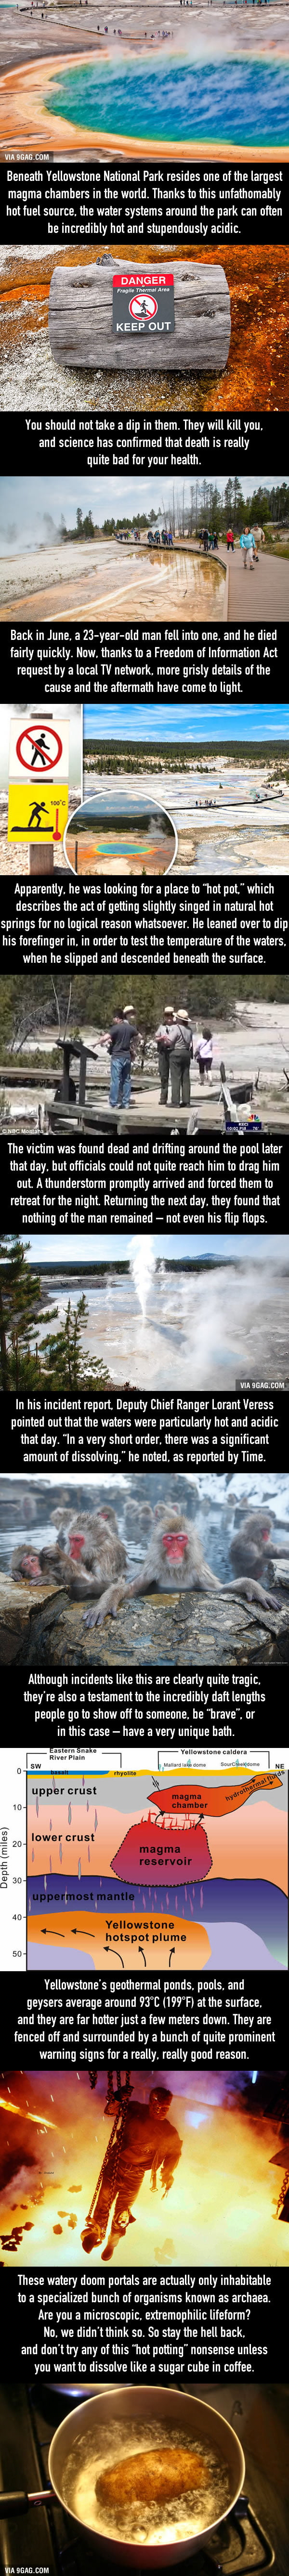 Man Looking For A Hot Soak In Yellowstone Spring, Slipped And Dissolved In Acidic Water